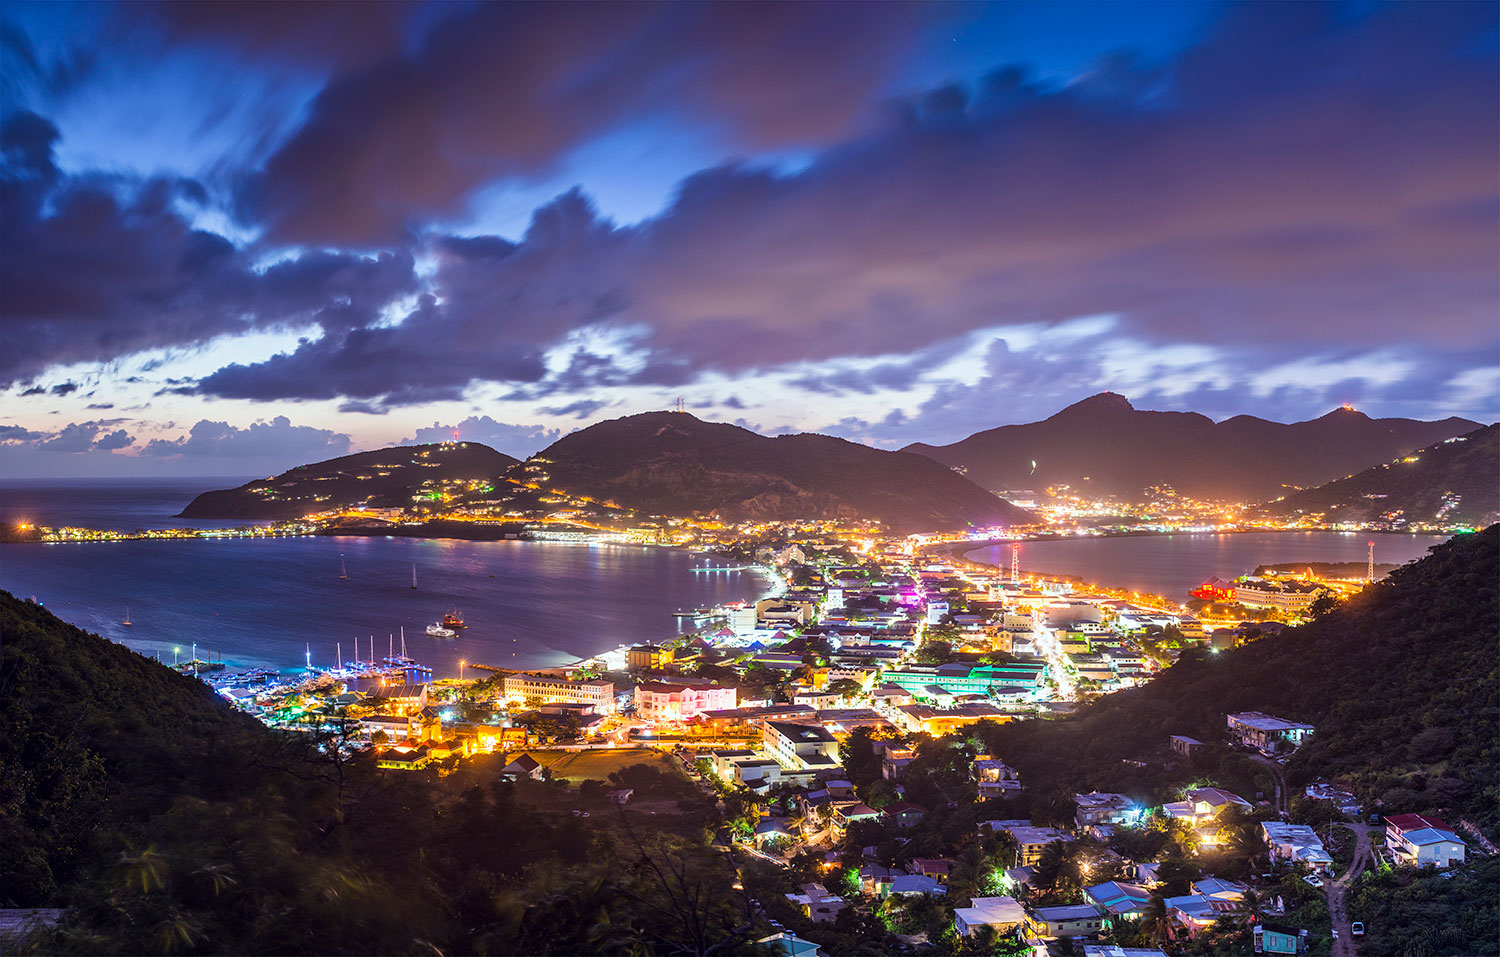 A reason to make St. Maarten your own